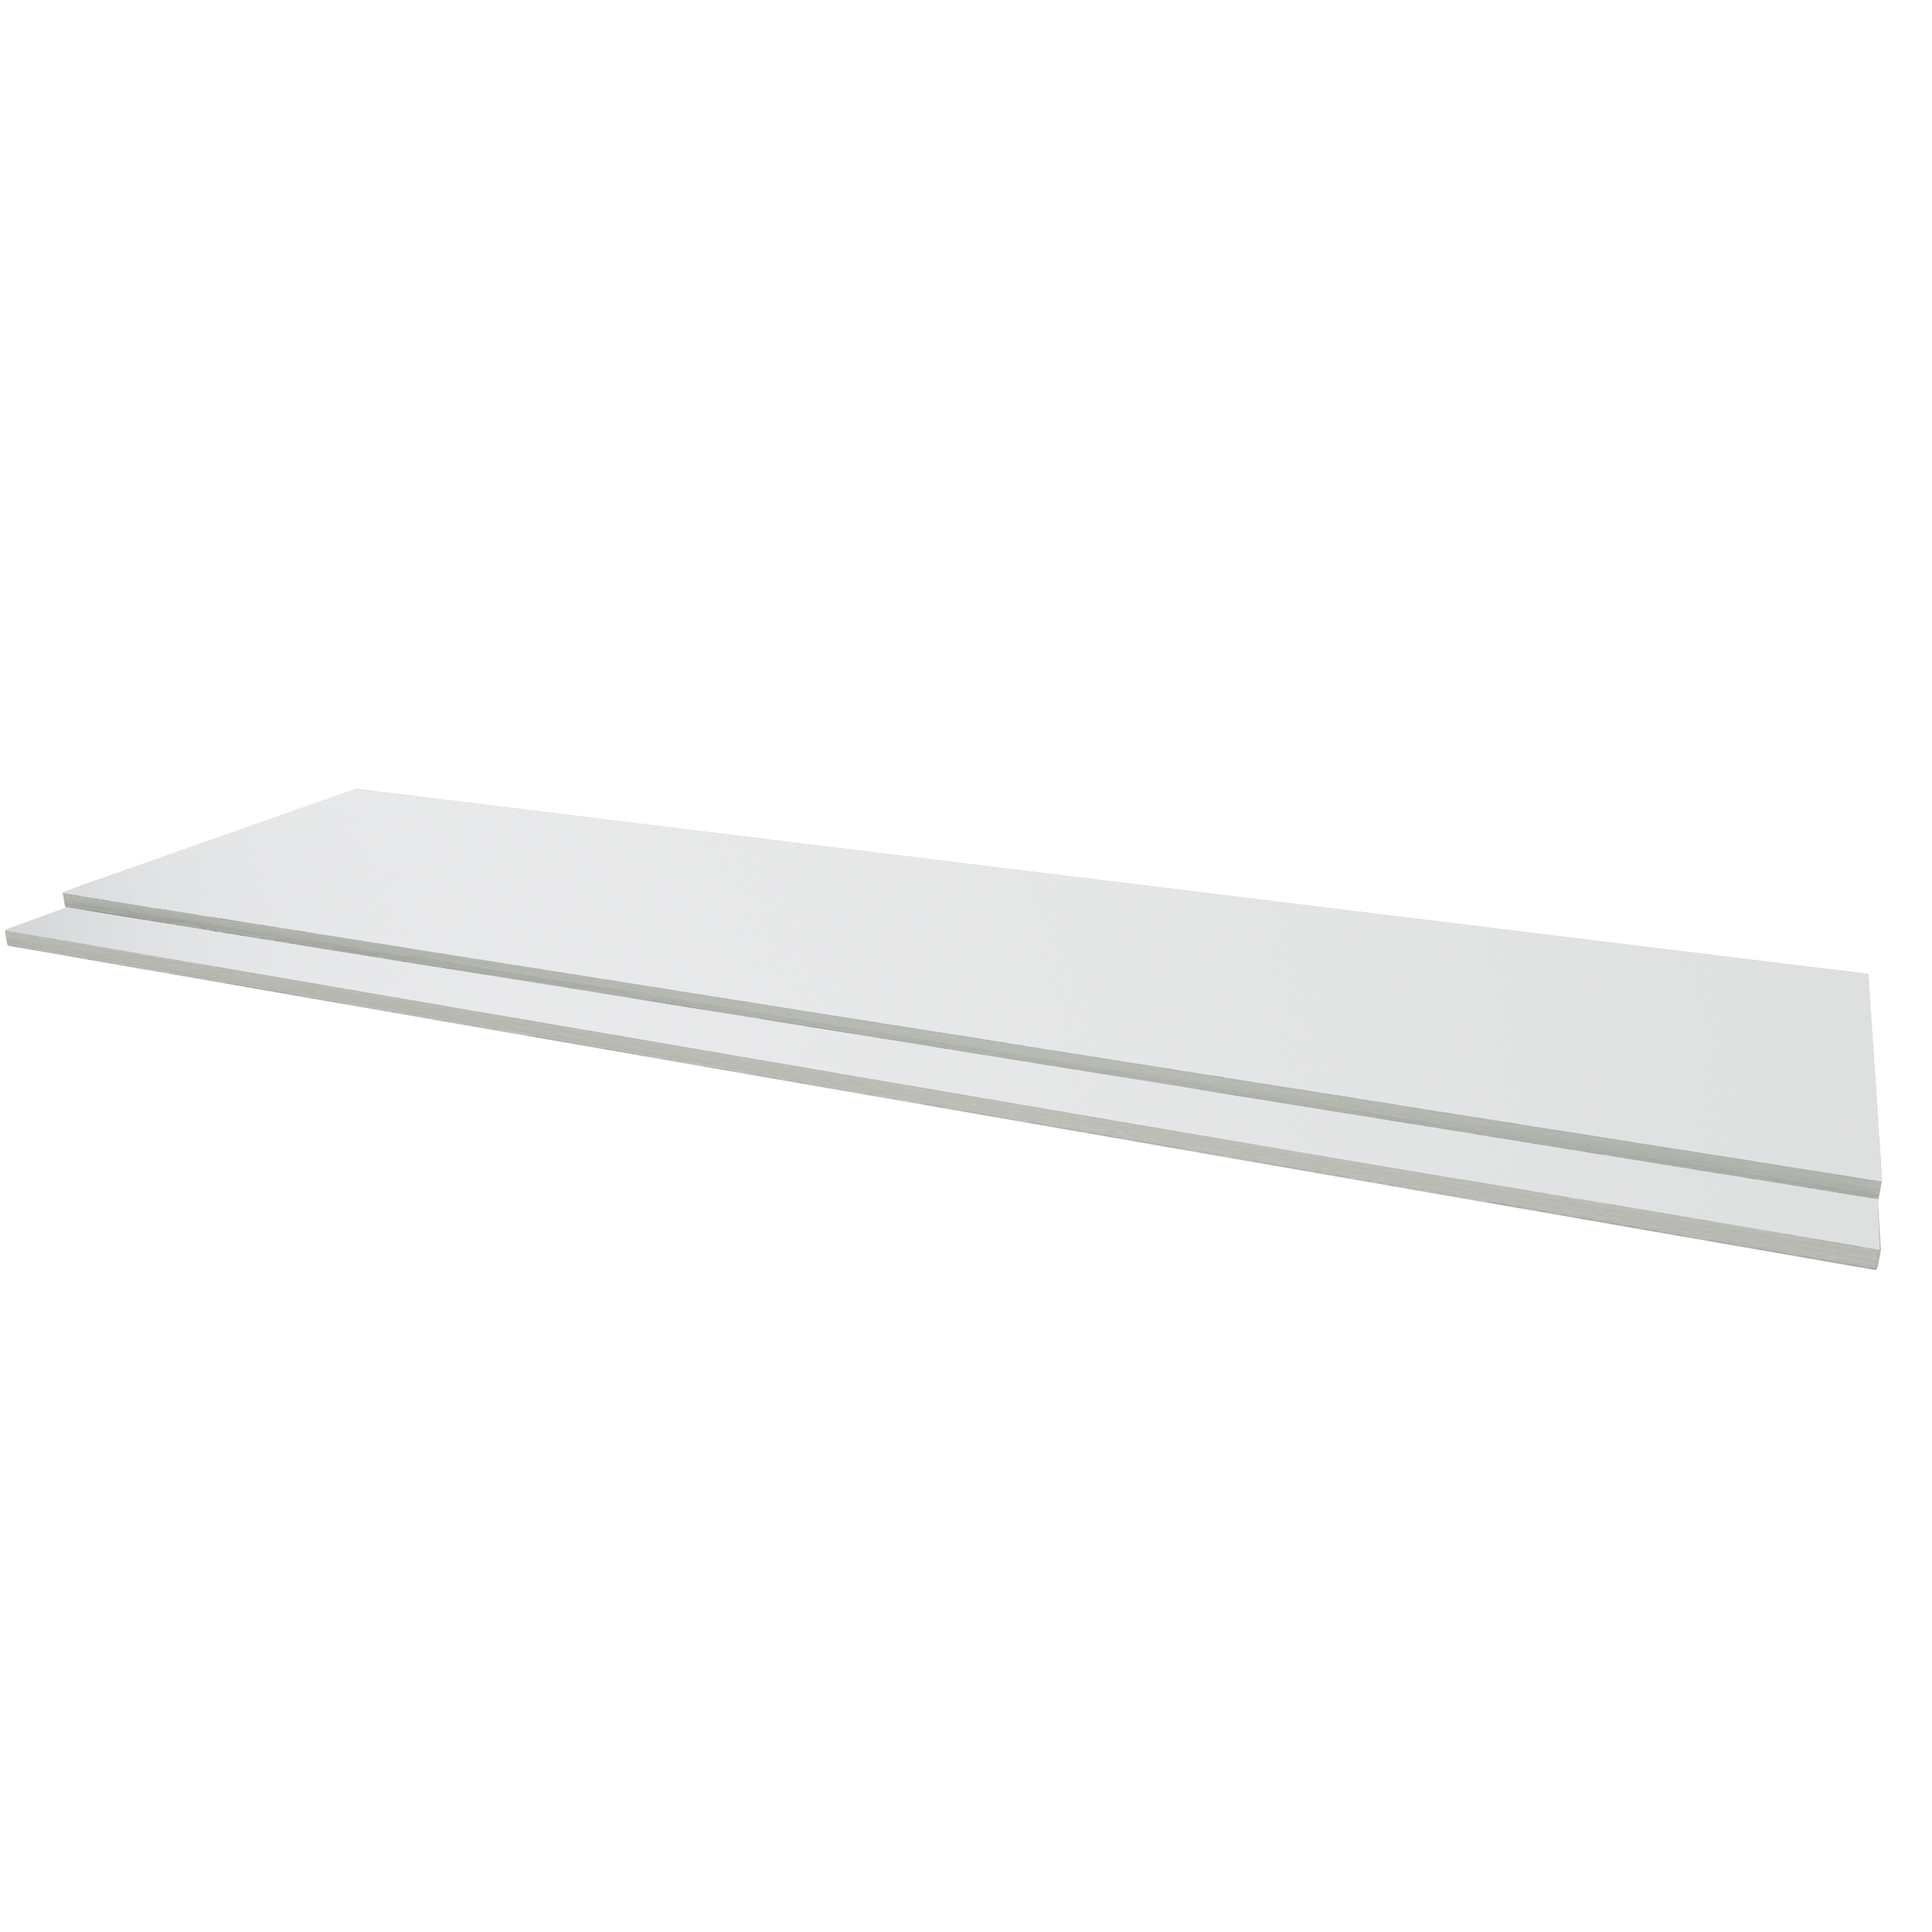 Purity White 1700mm bath panel